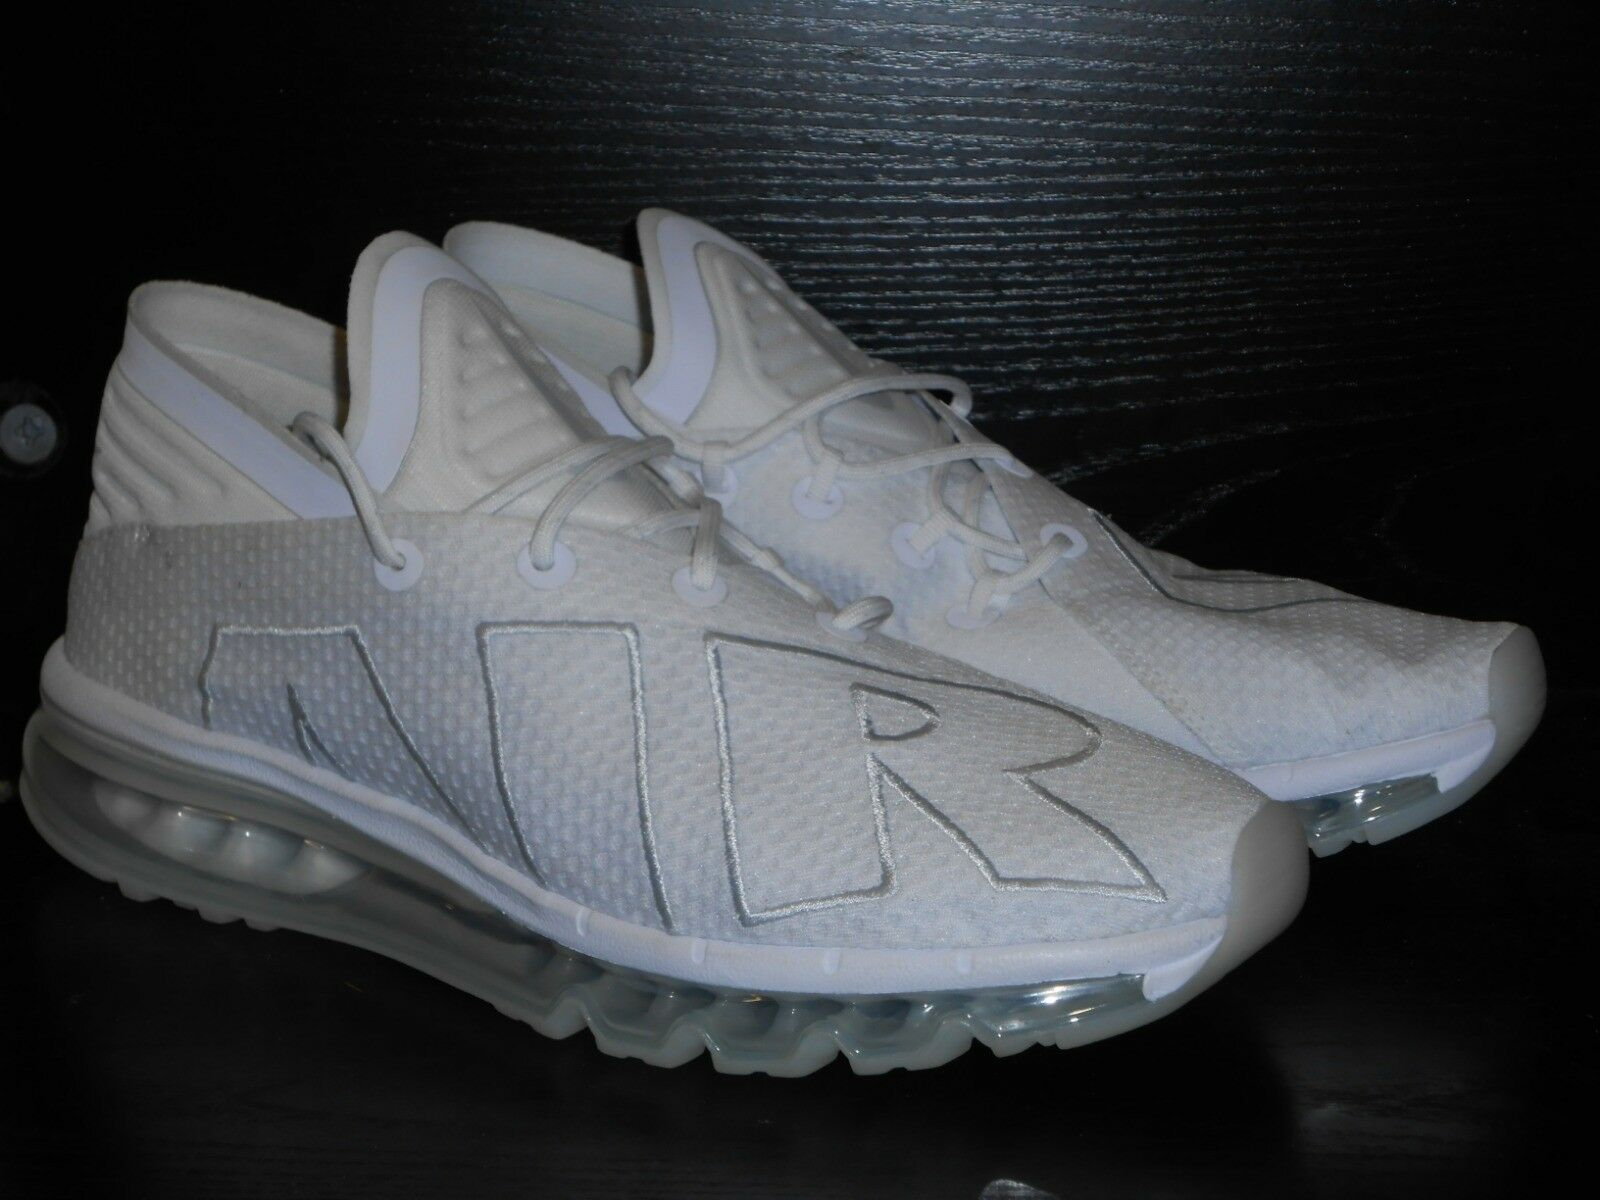 Nike Air Max Flair Mens Running Trainer shoes Size 8 White New